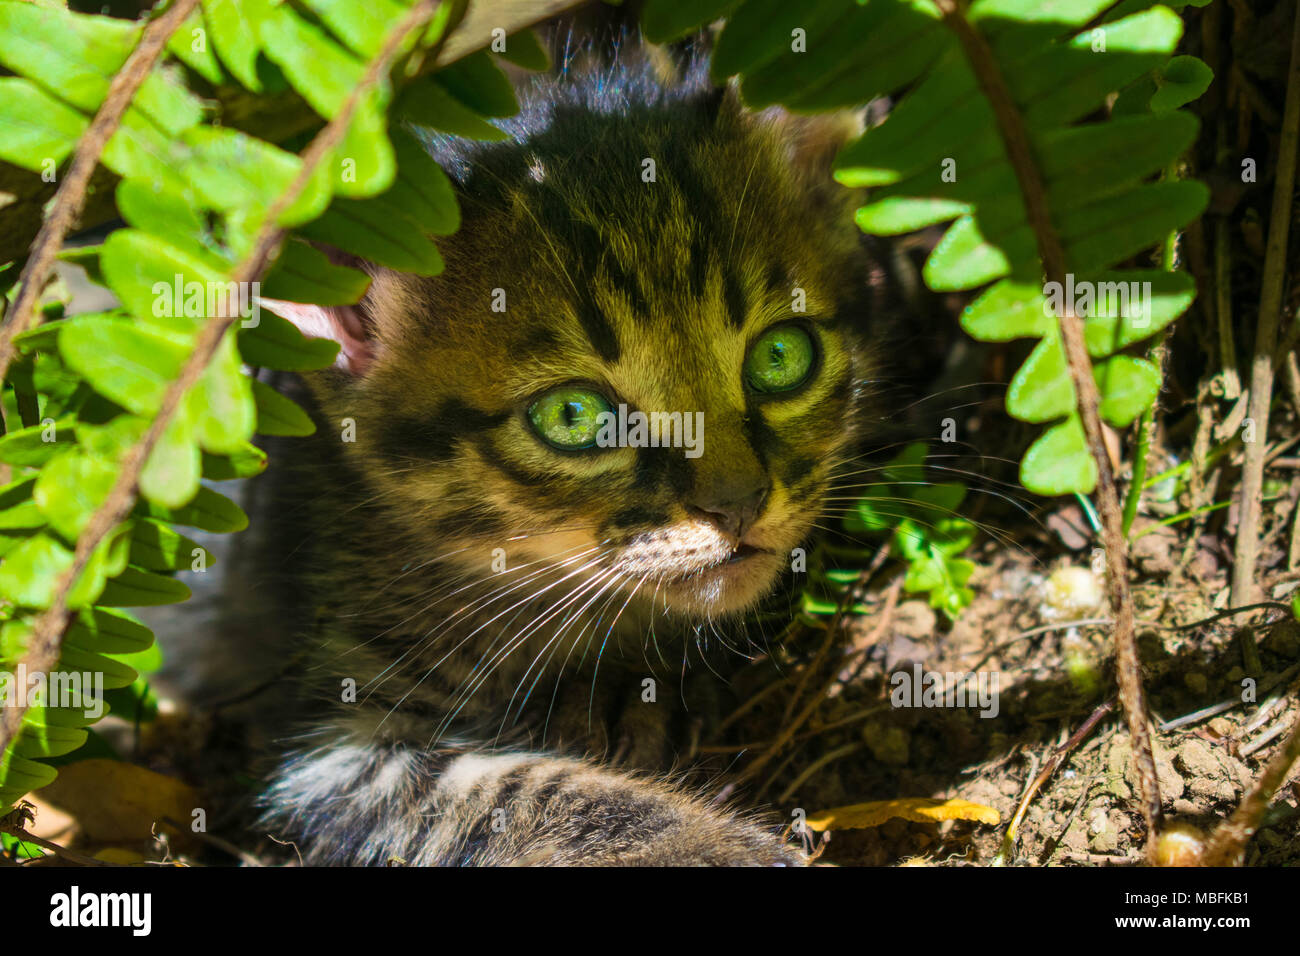 Cute kittens hiding - Stock Image